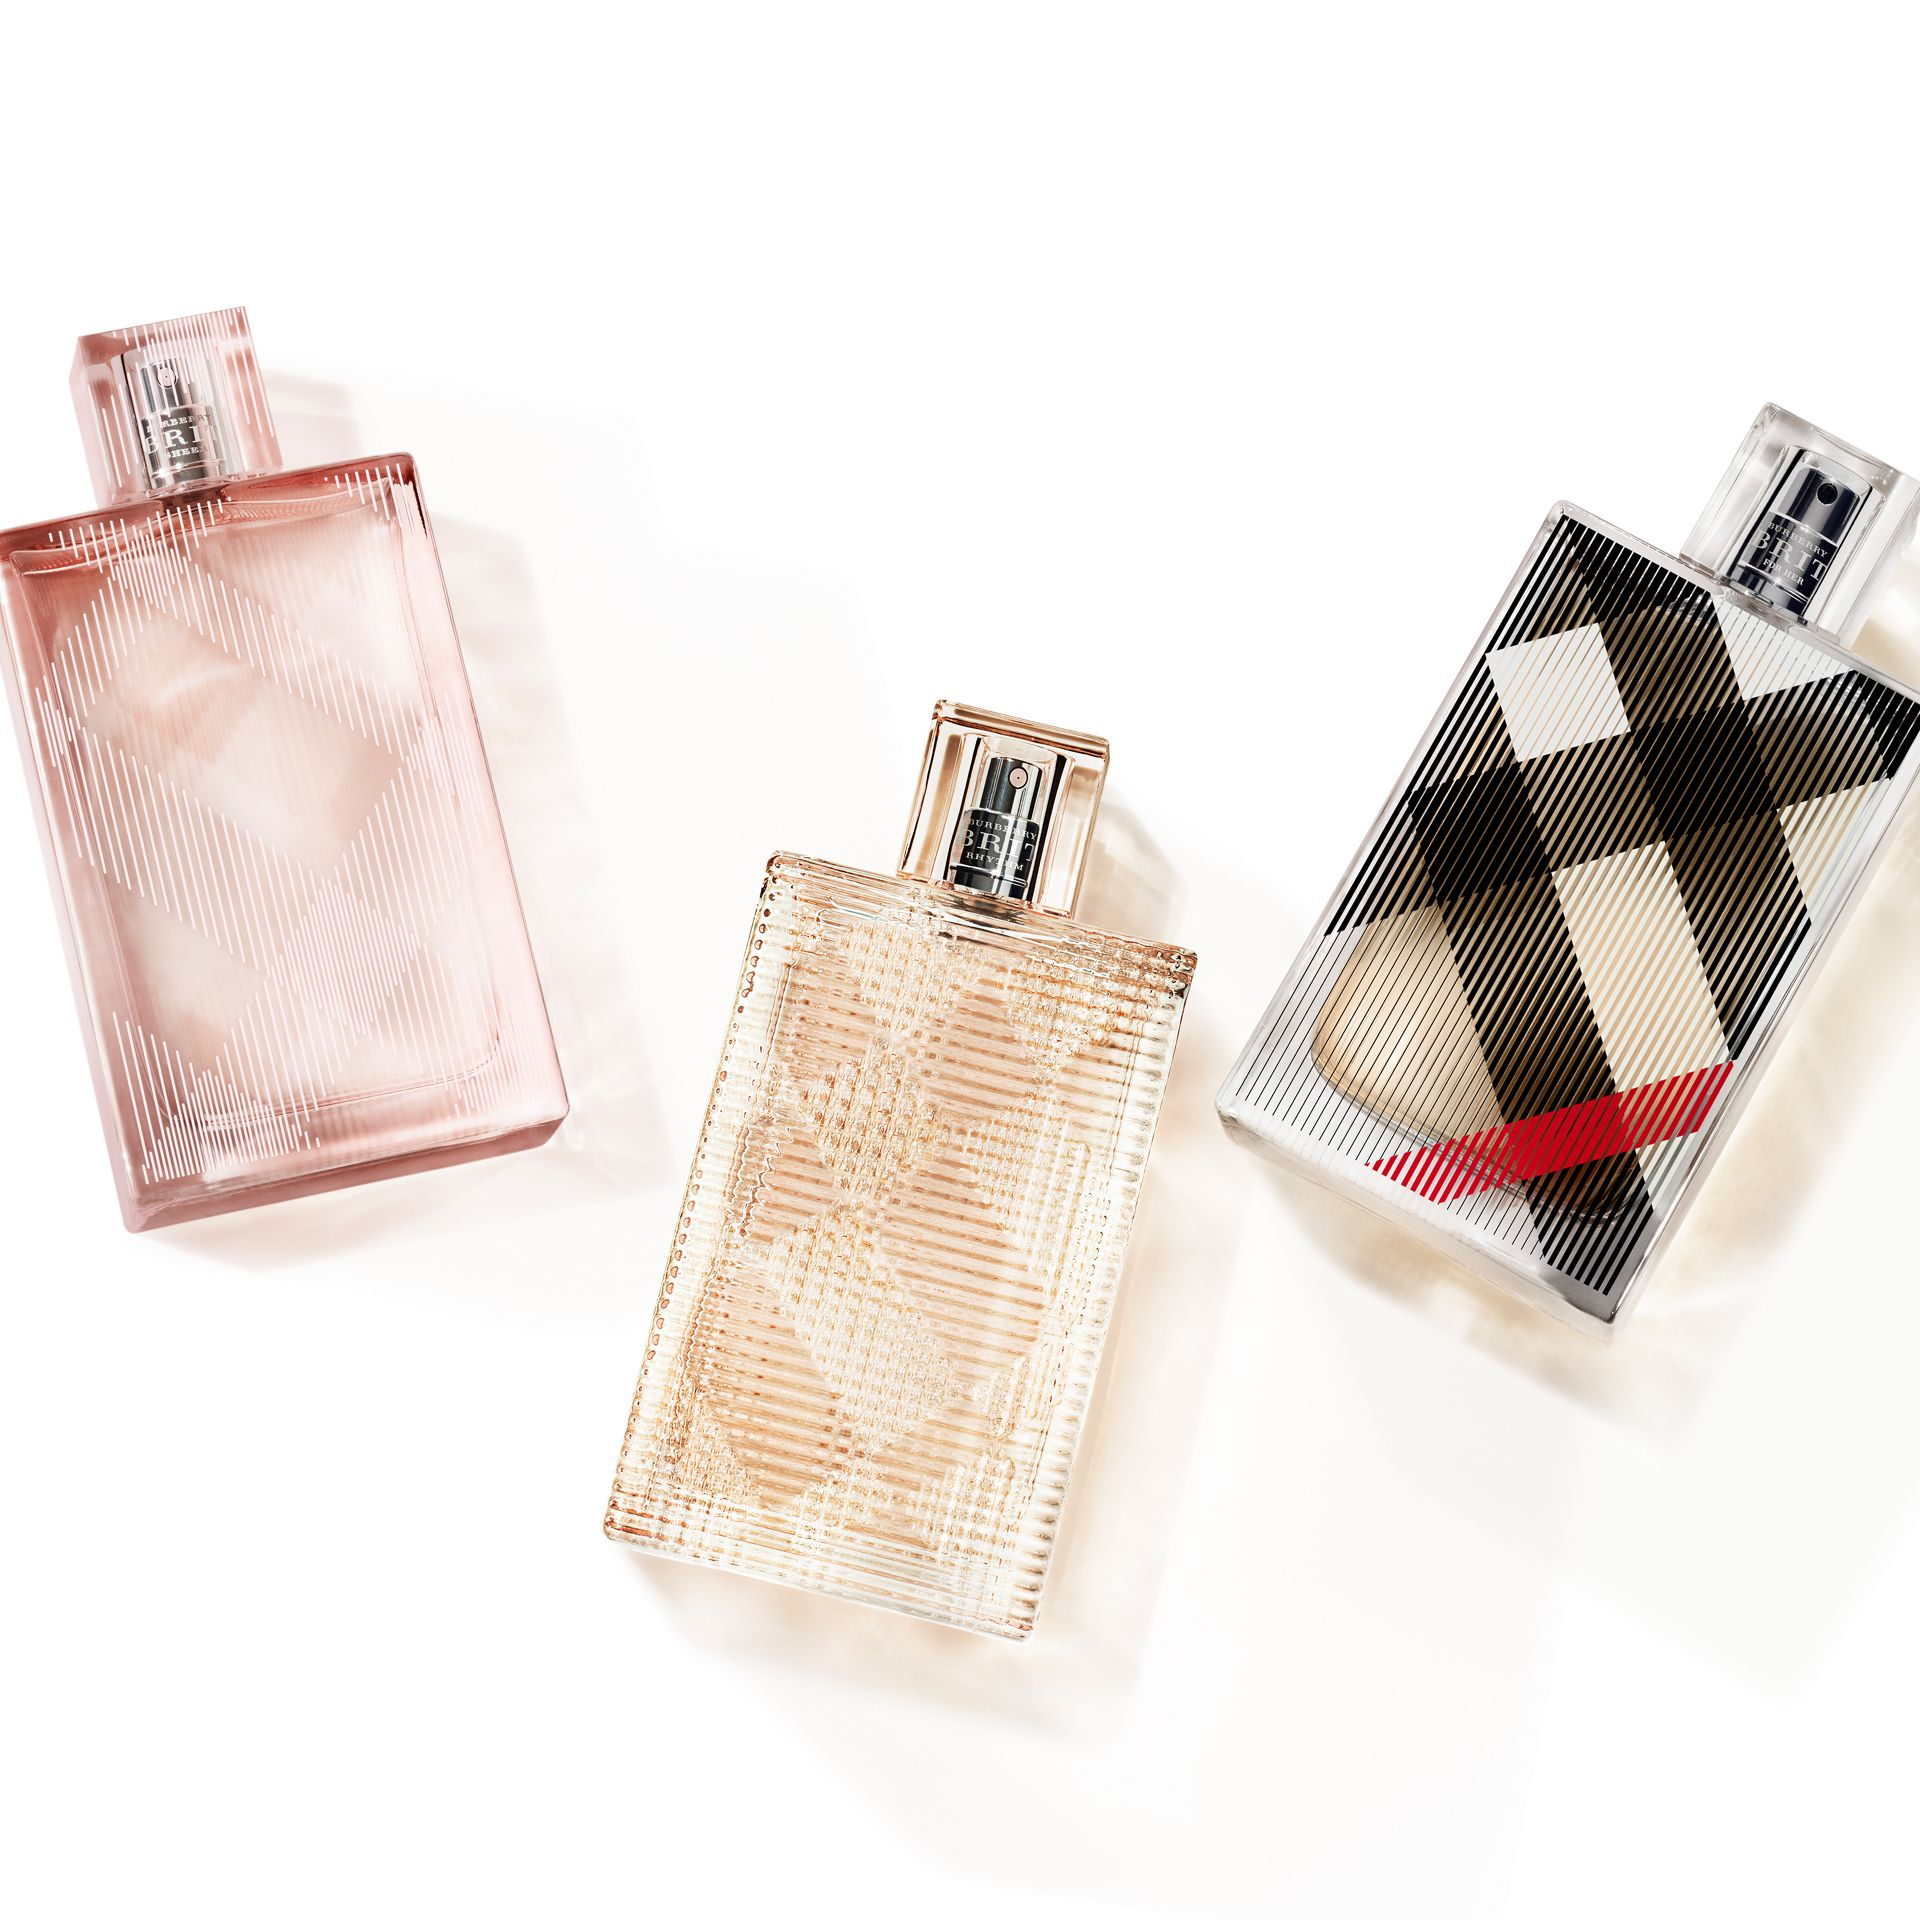 Burberry Brit Sheer Eau de Toilette 50ml - Women | Burberry Hong Kong - gallery image 2